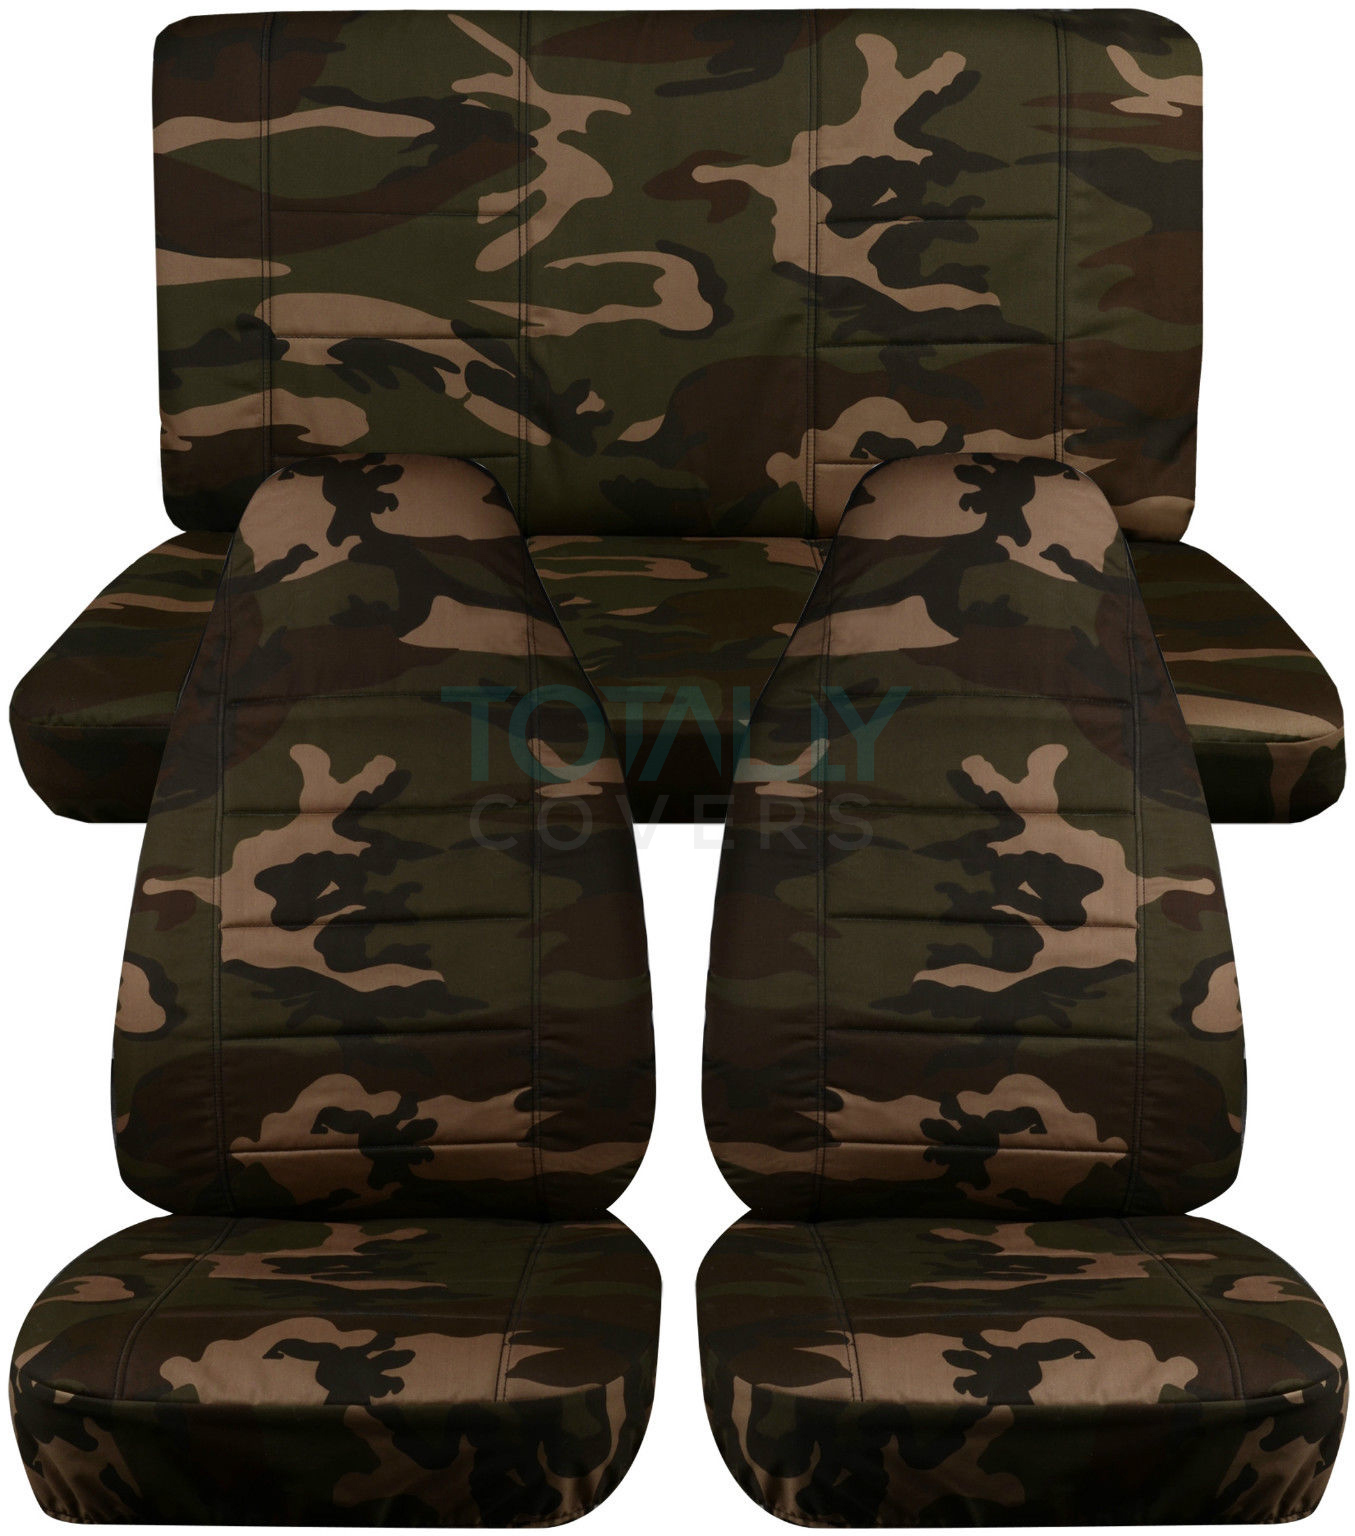 Jeep Wrangler Yj Tj Jk 1987 2017 Camo Seat Covers Front Amp Rear Full Set 2 4 Door Ebay